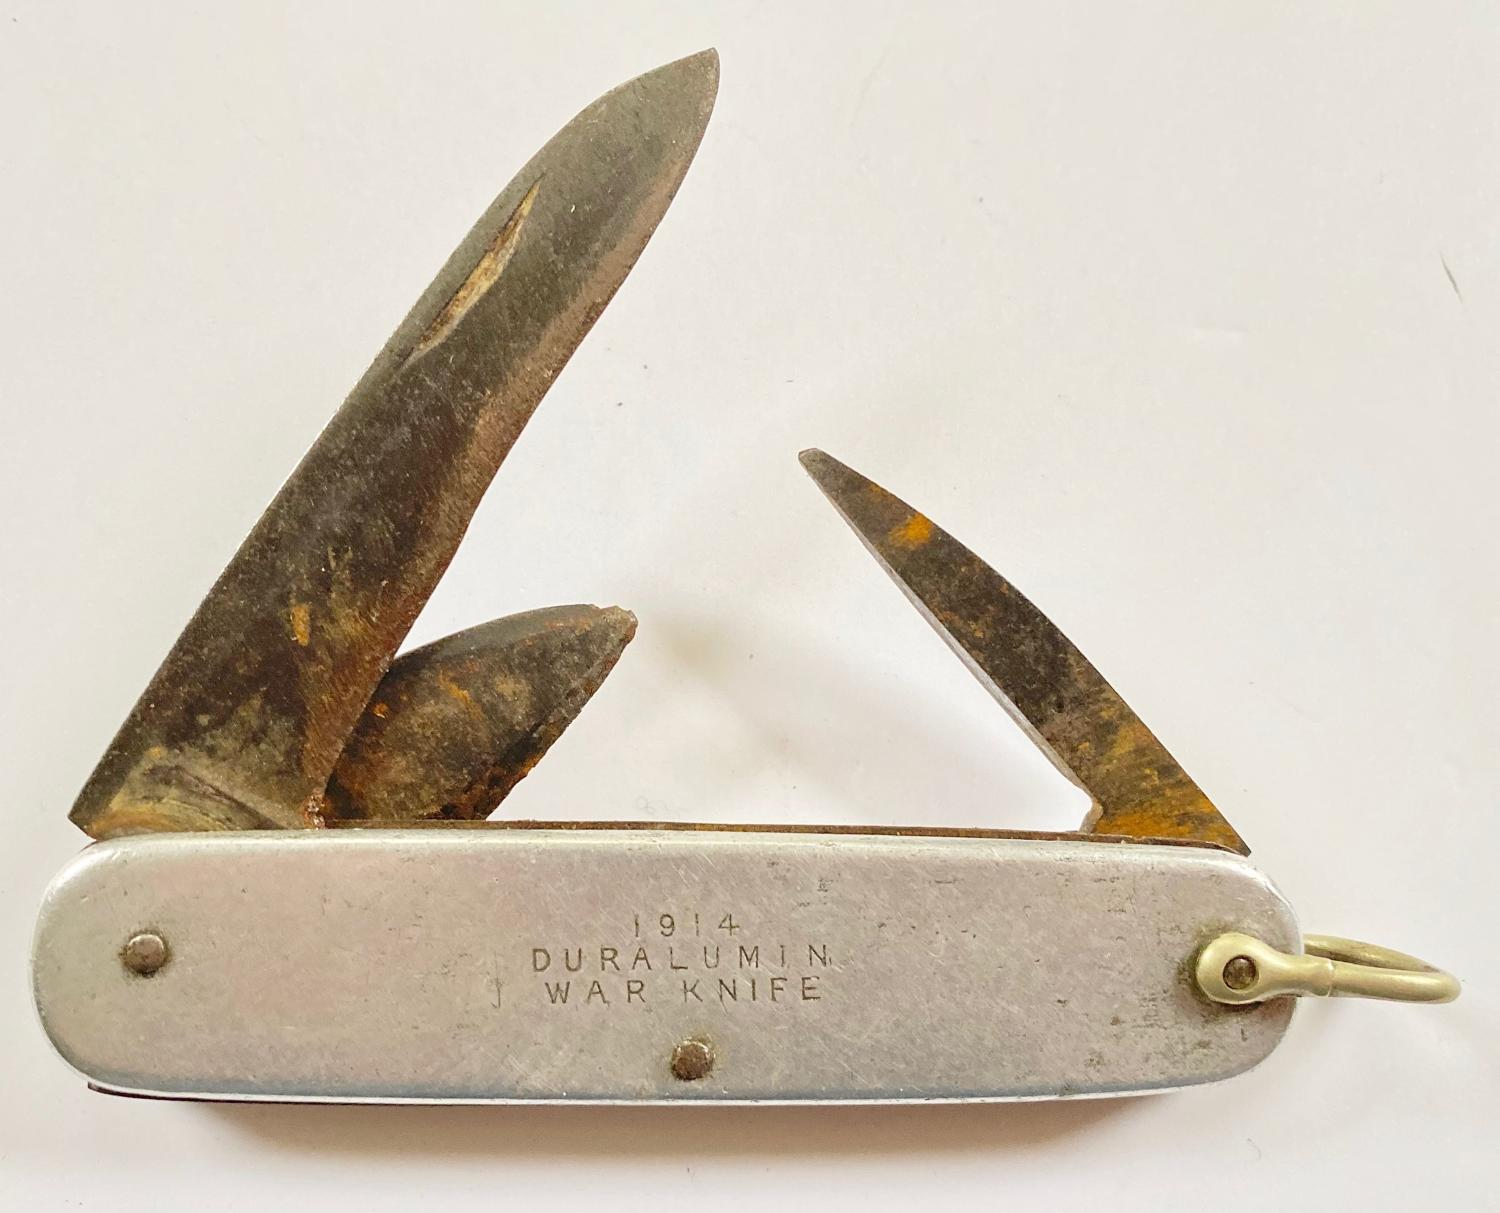 WW1 1914 Duralumin War Knife Pen Knife.